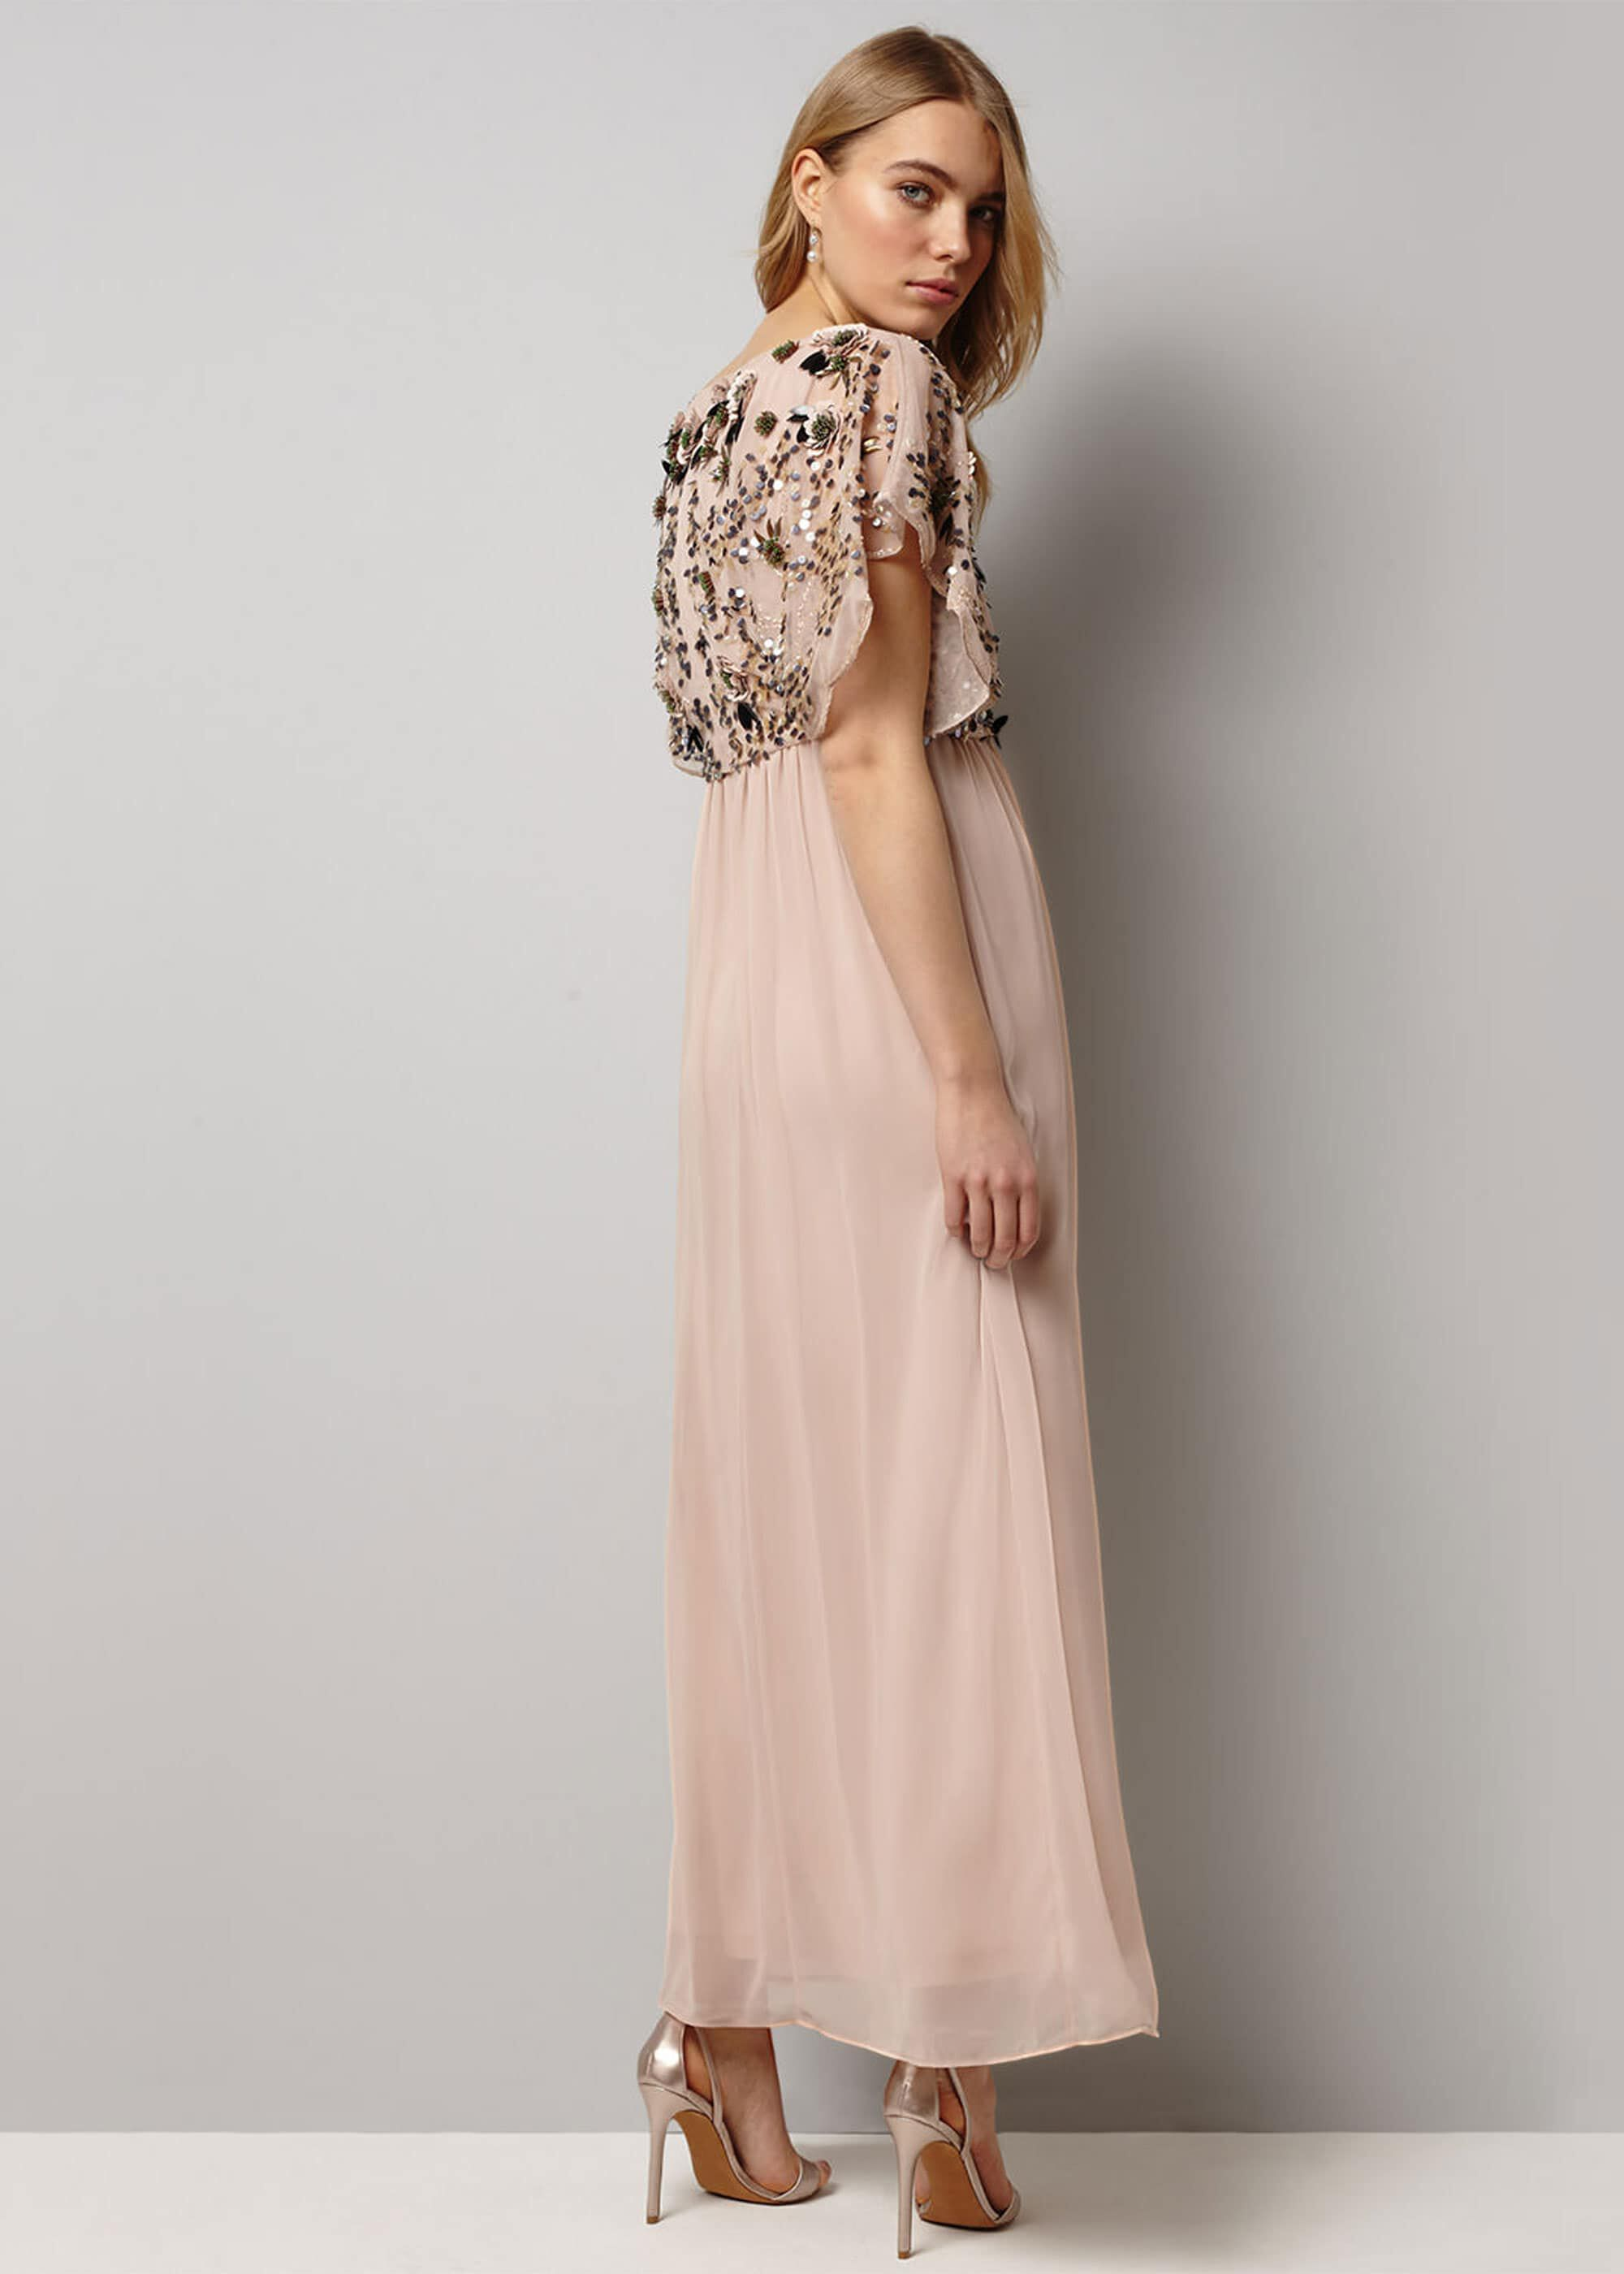 Phase Eight Aaliyah Embellished Maxi Dress, Pink, Maxi